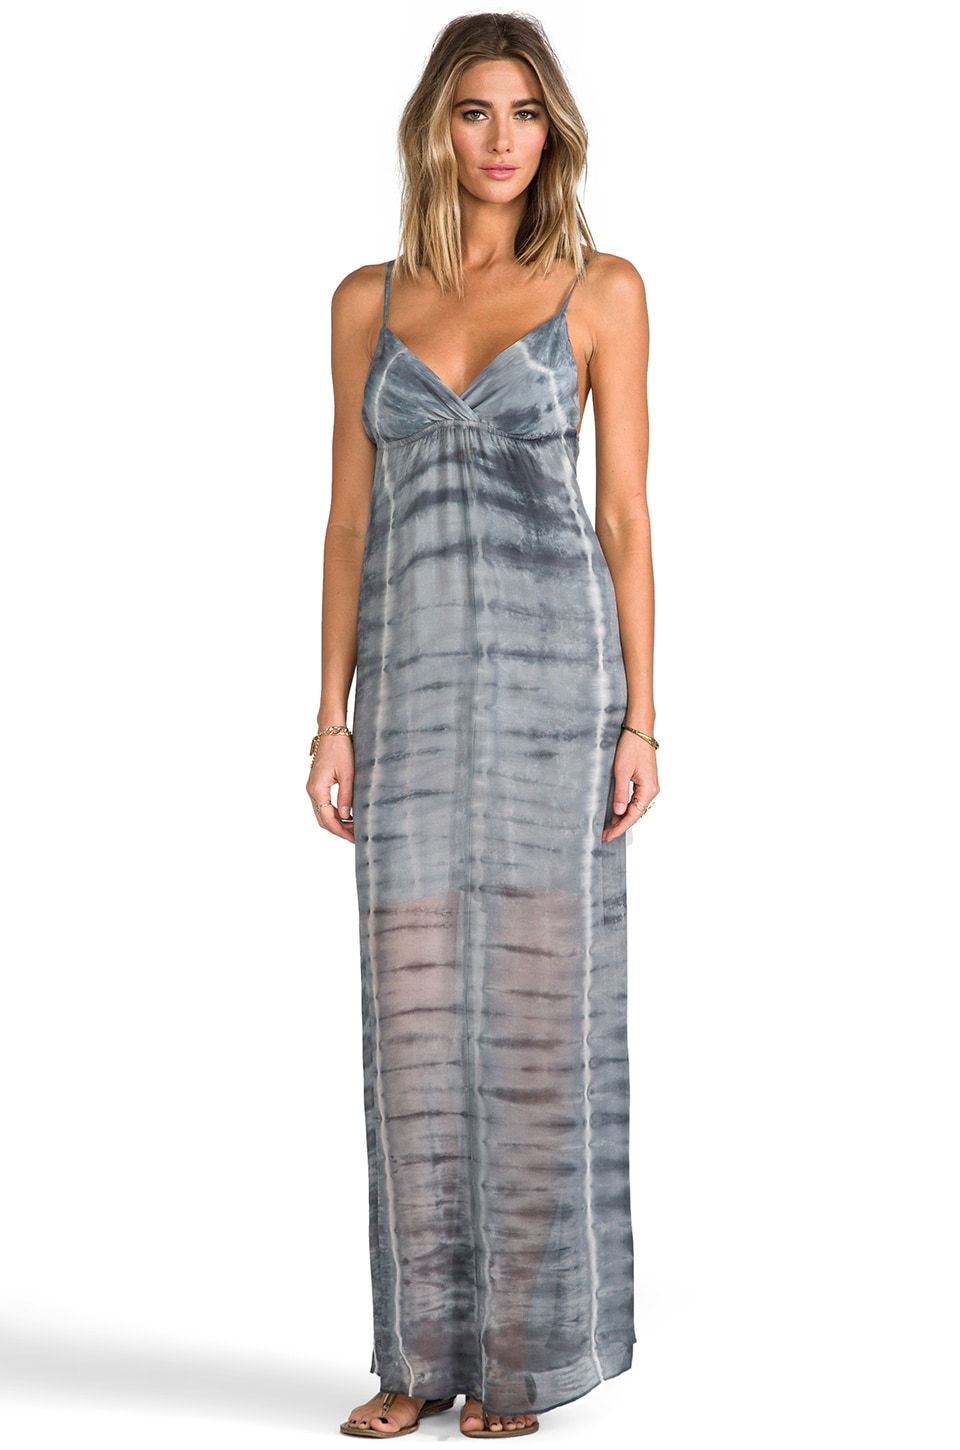 Gypsy 05 Silk Triangle Maxi Dress in Charcoal